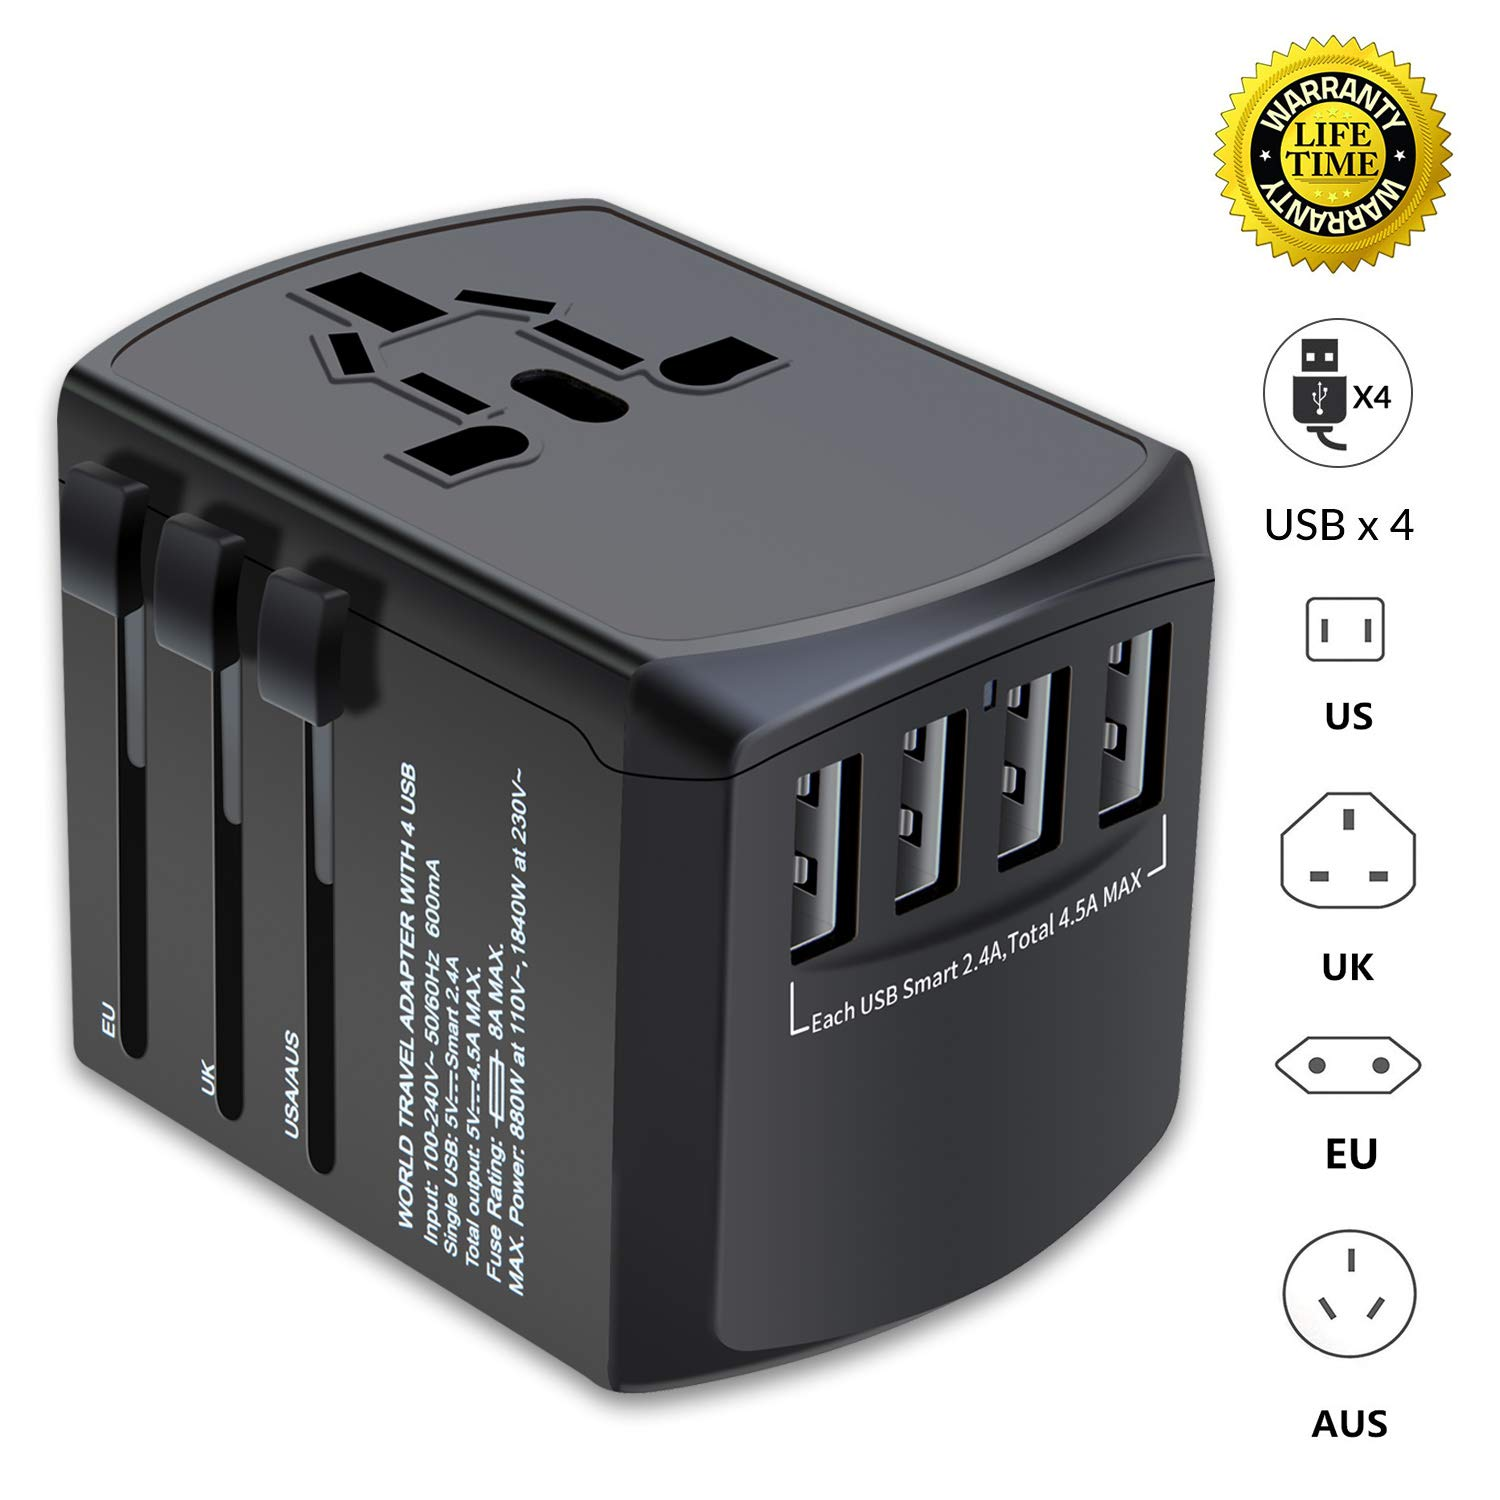 Travel Adapter, Universal Plug Adapter for Worldwide travel, International Power Adapter, Plug Converter with 4 USB Ports, All in One Wall Charger AC Socket for European UK AUS ASIA Cell Phone Laptop by SLMASK